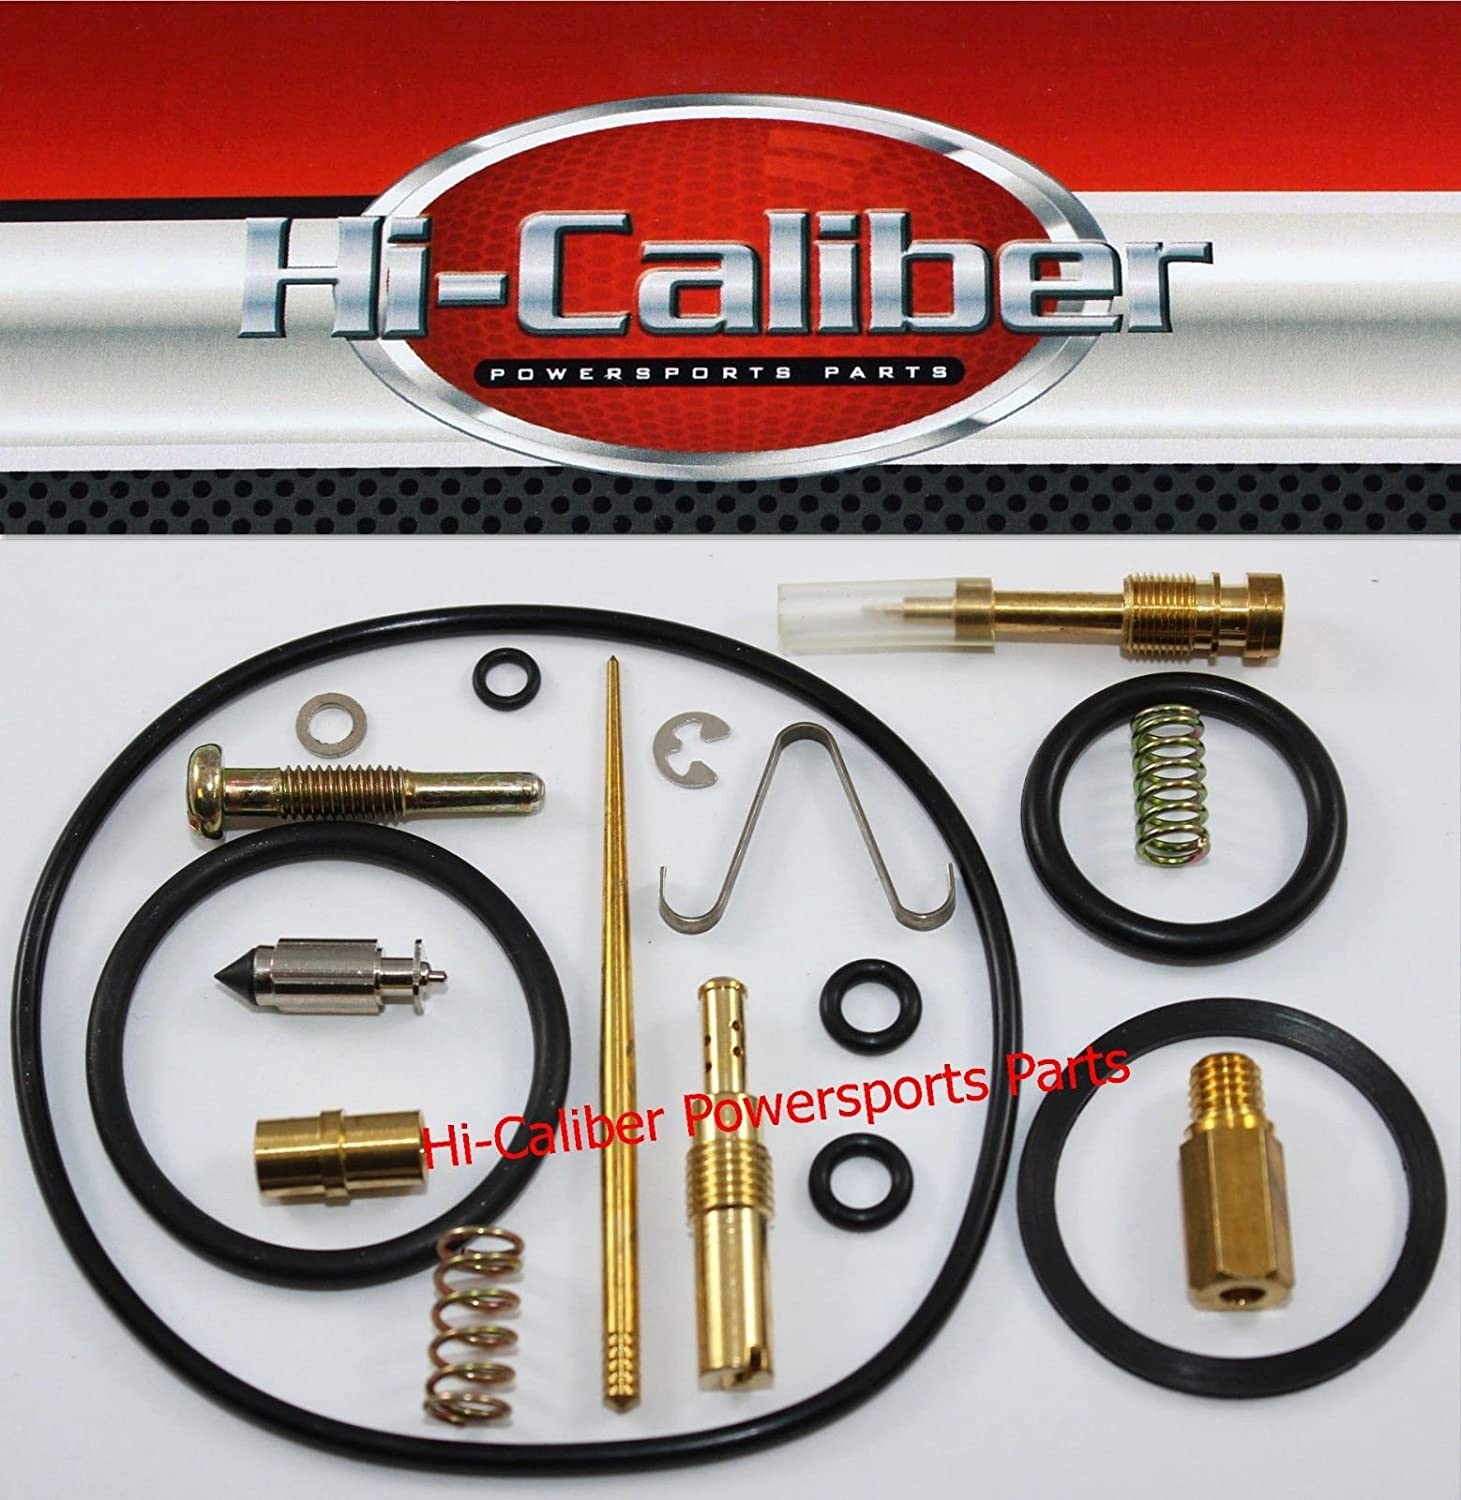 HI-CALIBER POWERSPORTS PARTS Carburetor Carb Rebuild Kit FOR 1983 Honda ATC 200